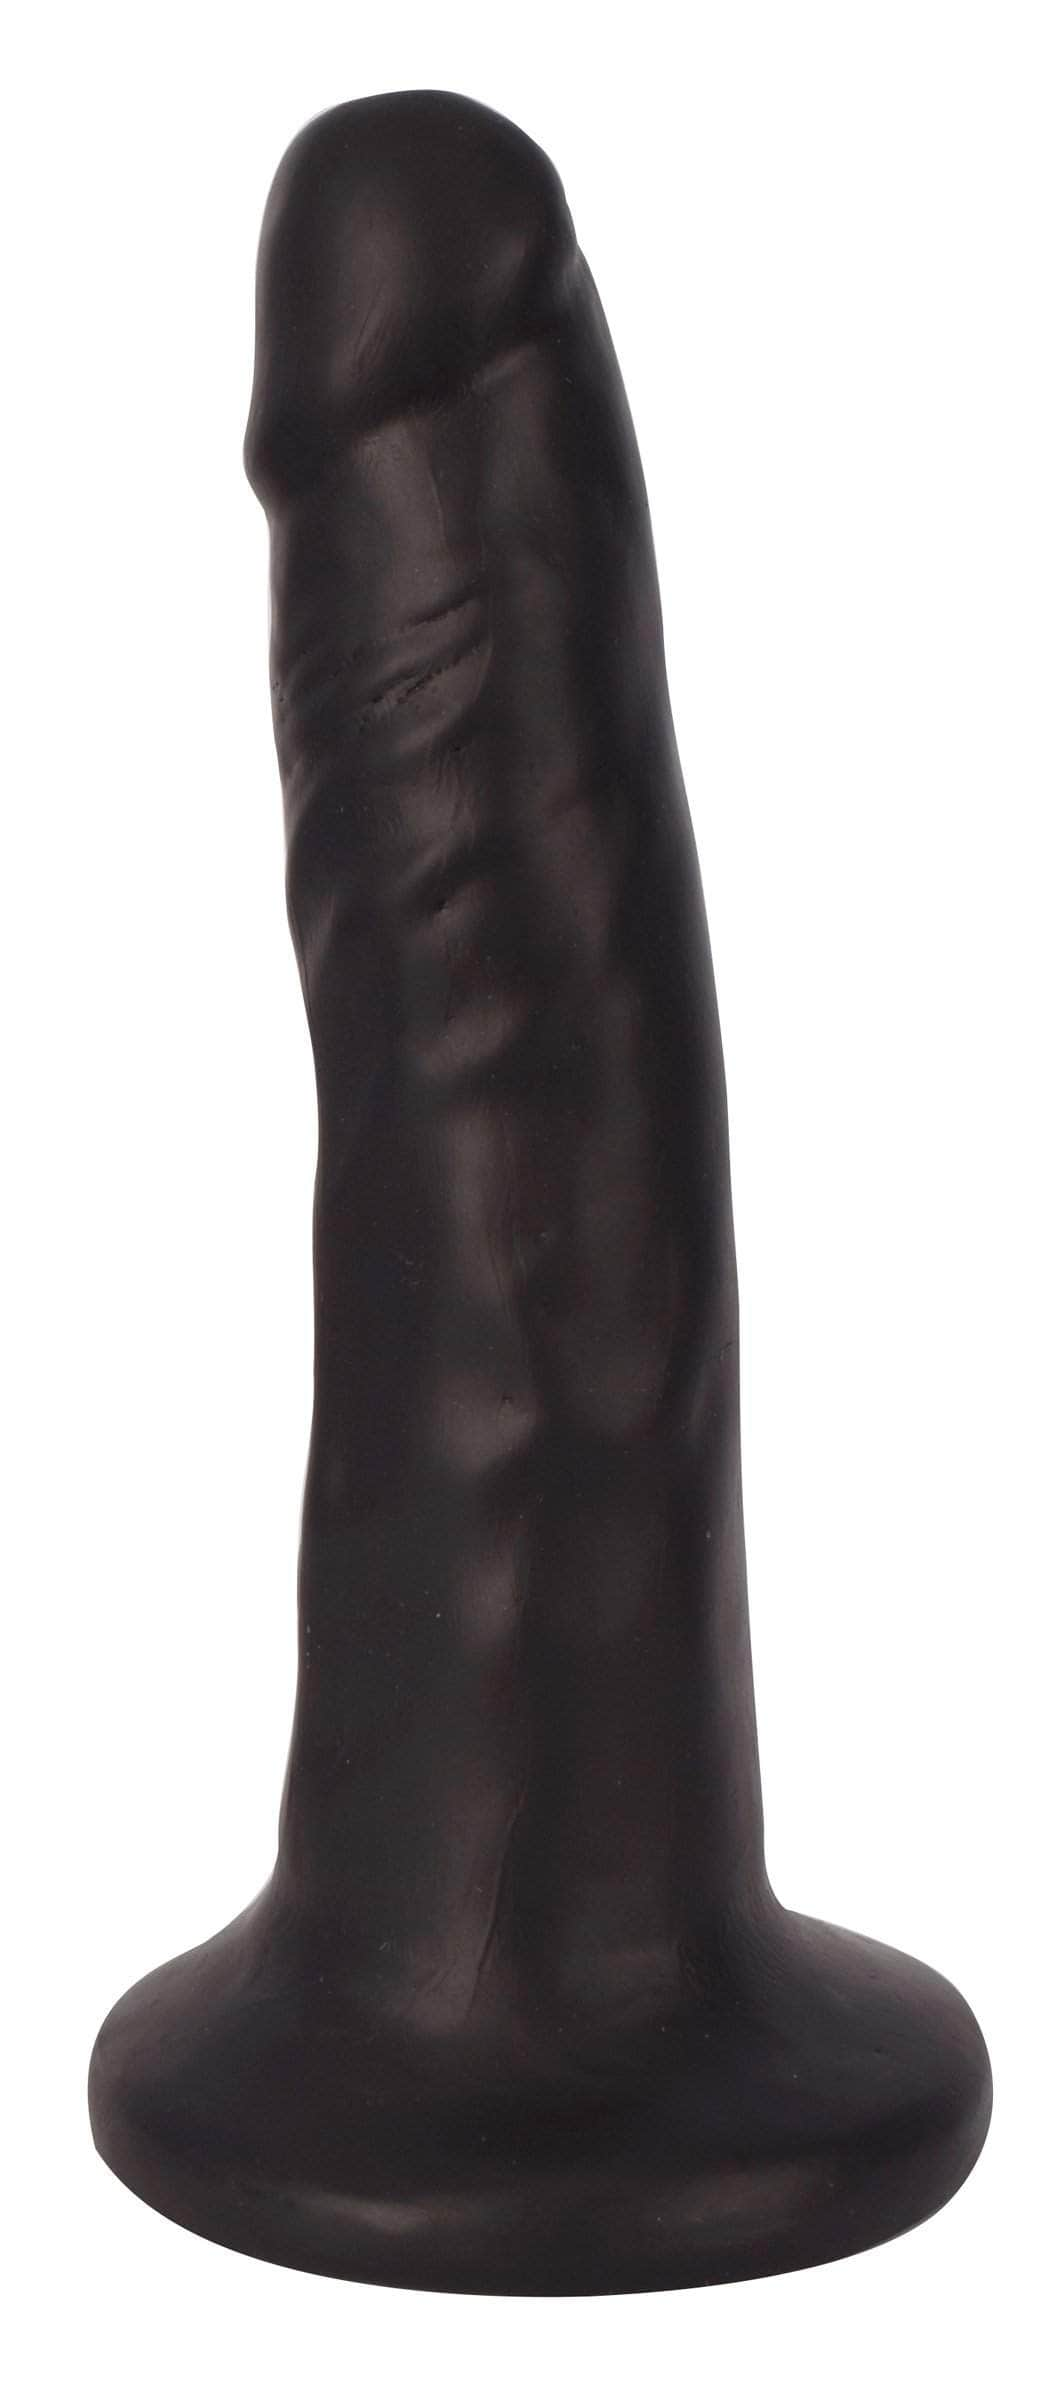 Thinz 6 Inch Slim Dong - Dark